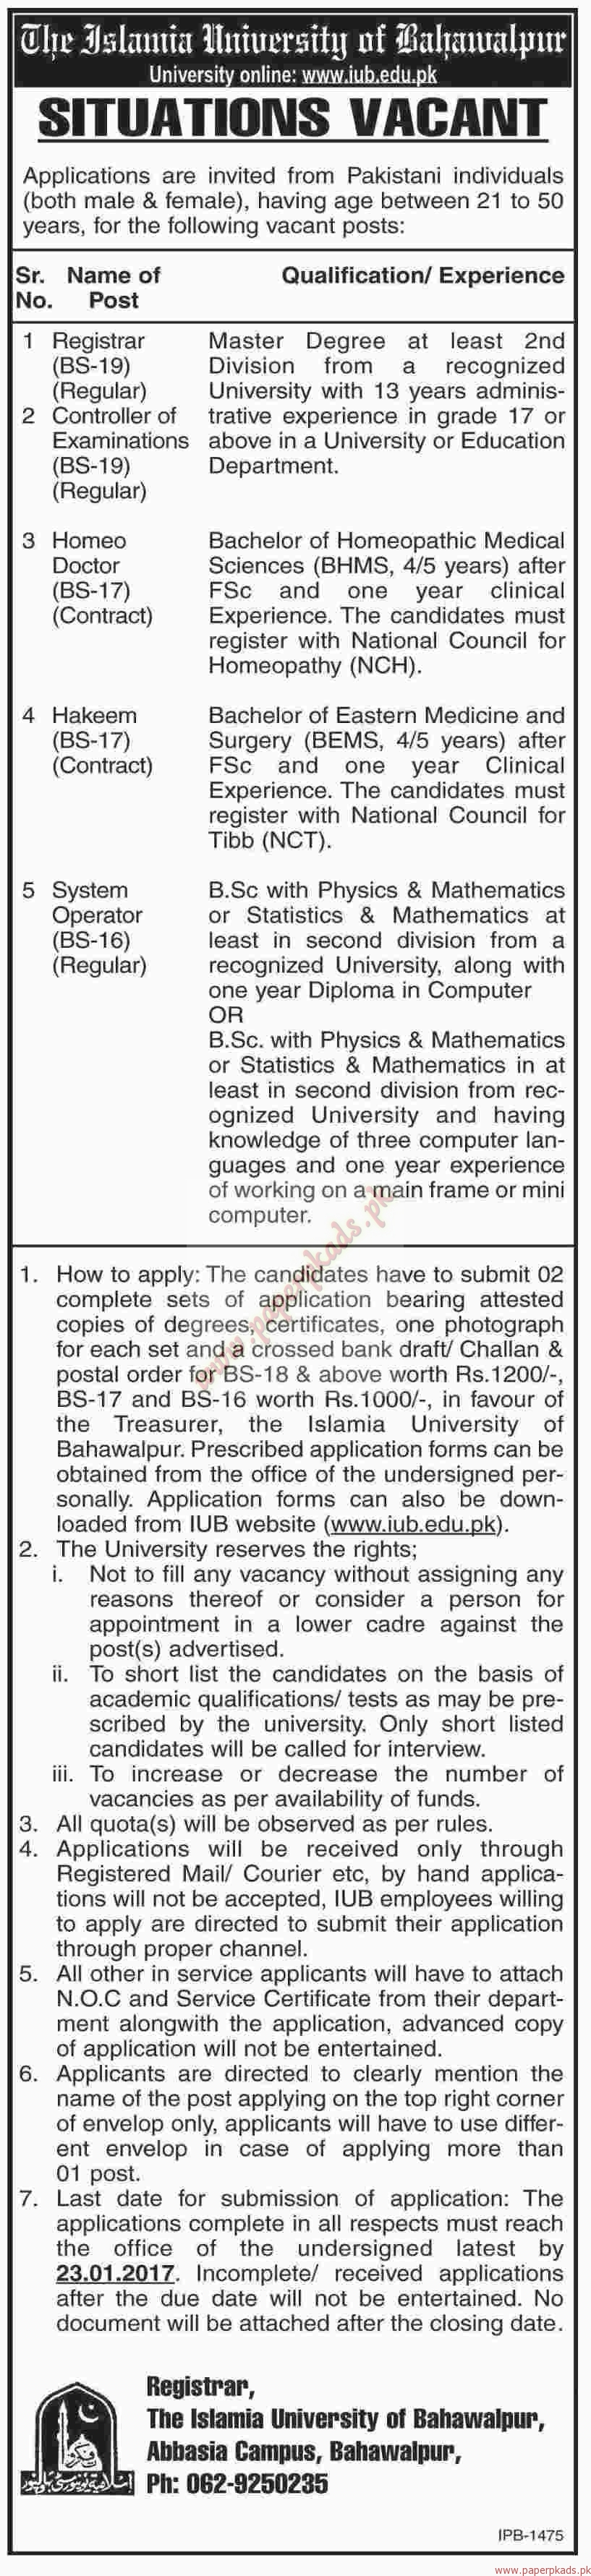 The Islamia University of Bahawalpur Jobs - Dawn Jobs ads 03 January 2017